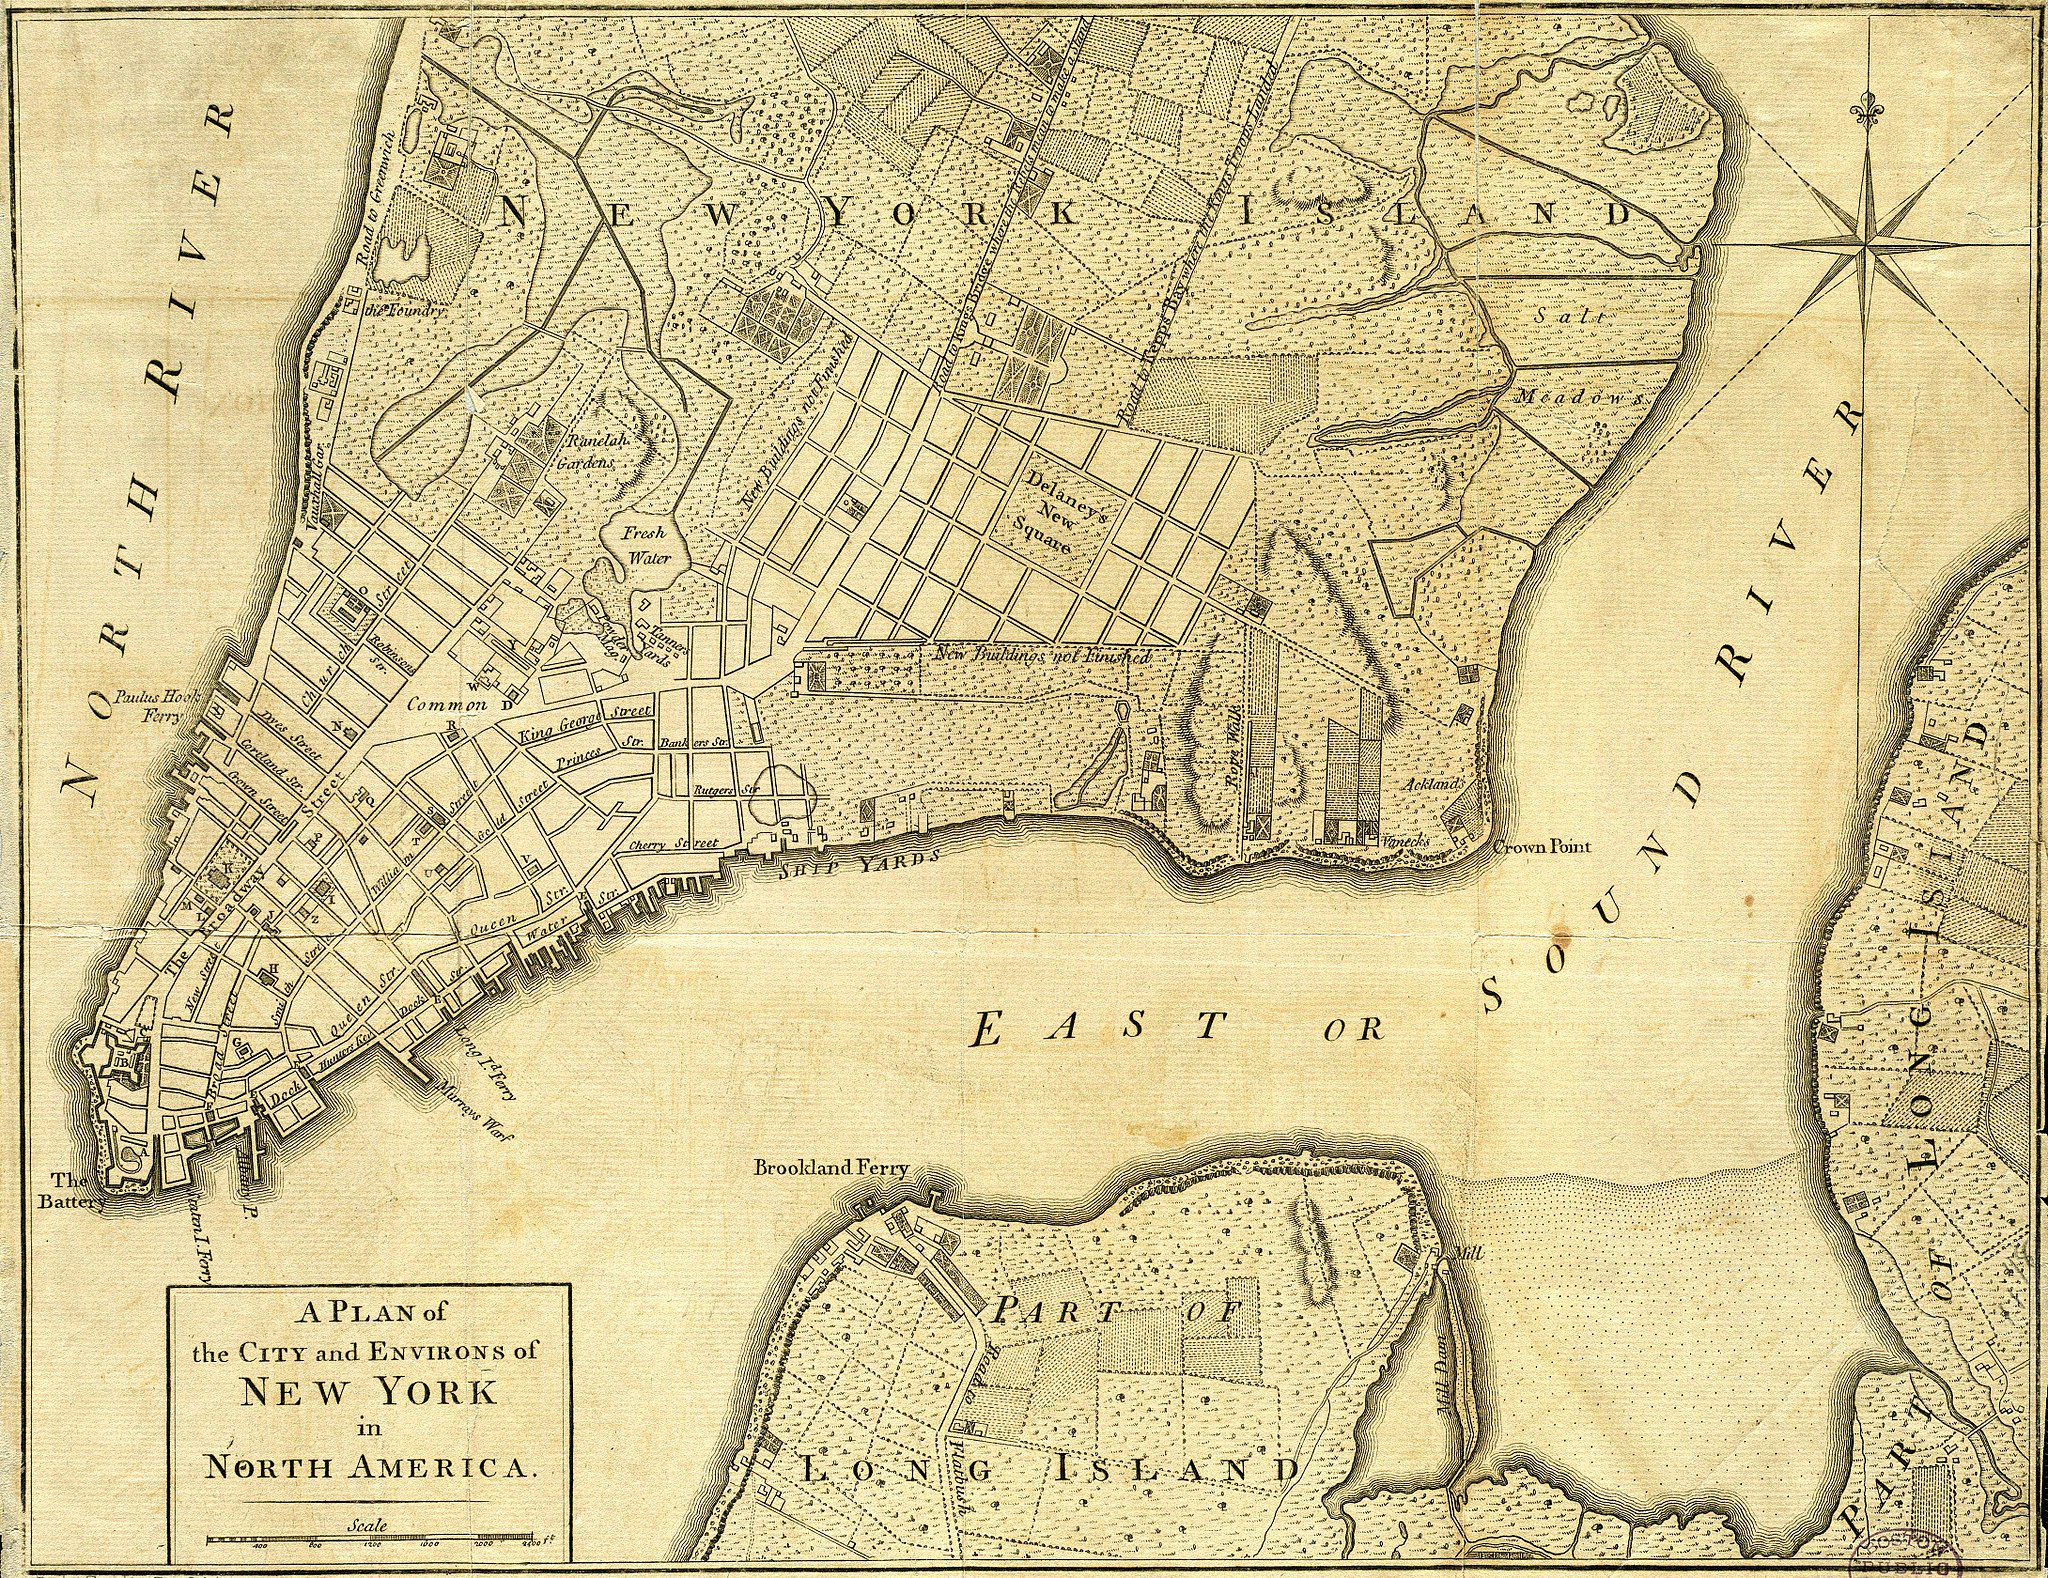 Learn About America's First Spies, the Culper Ring